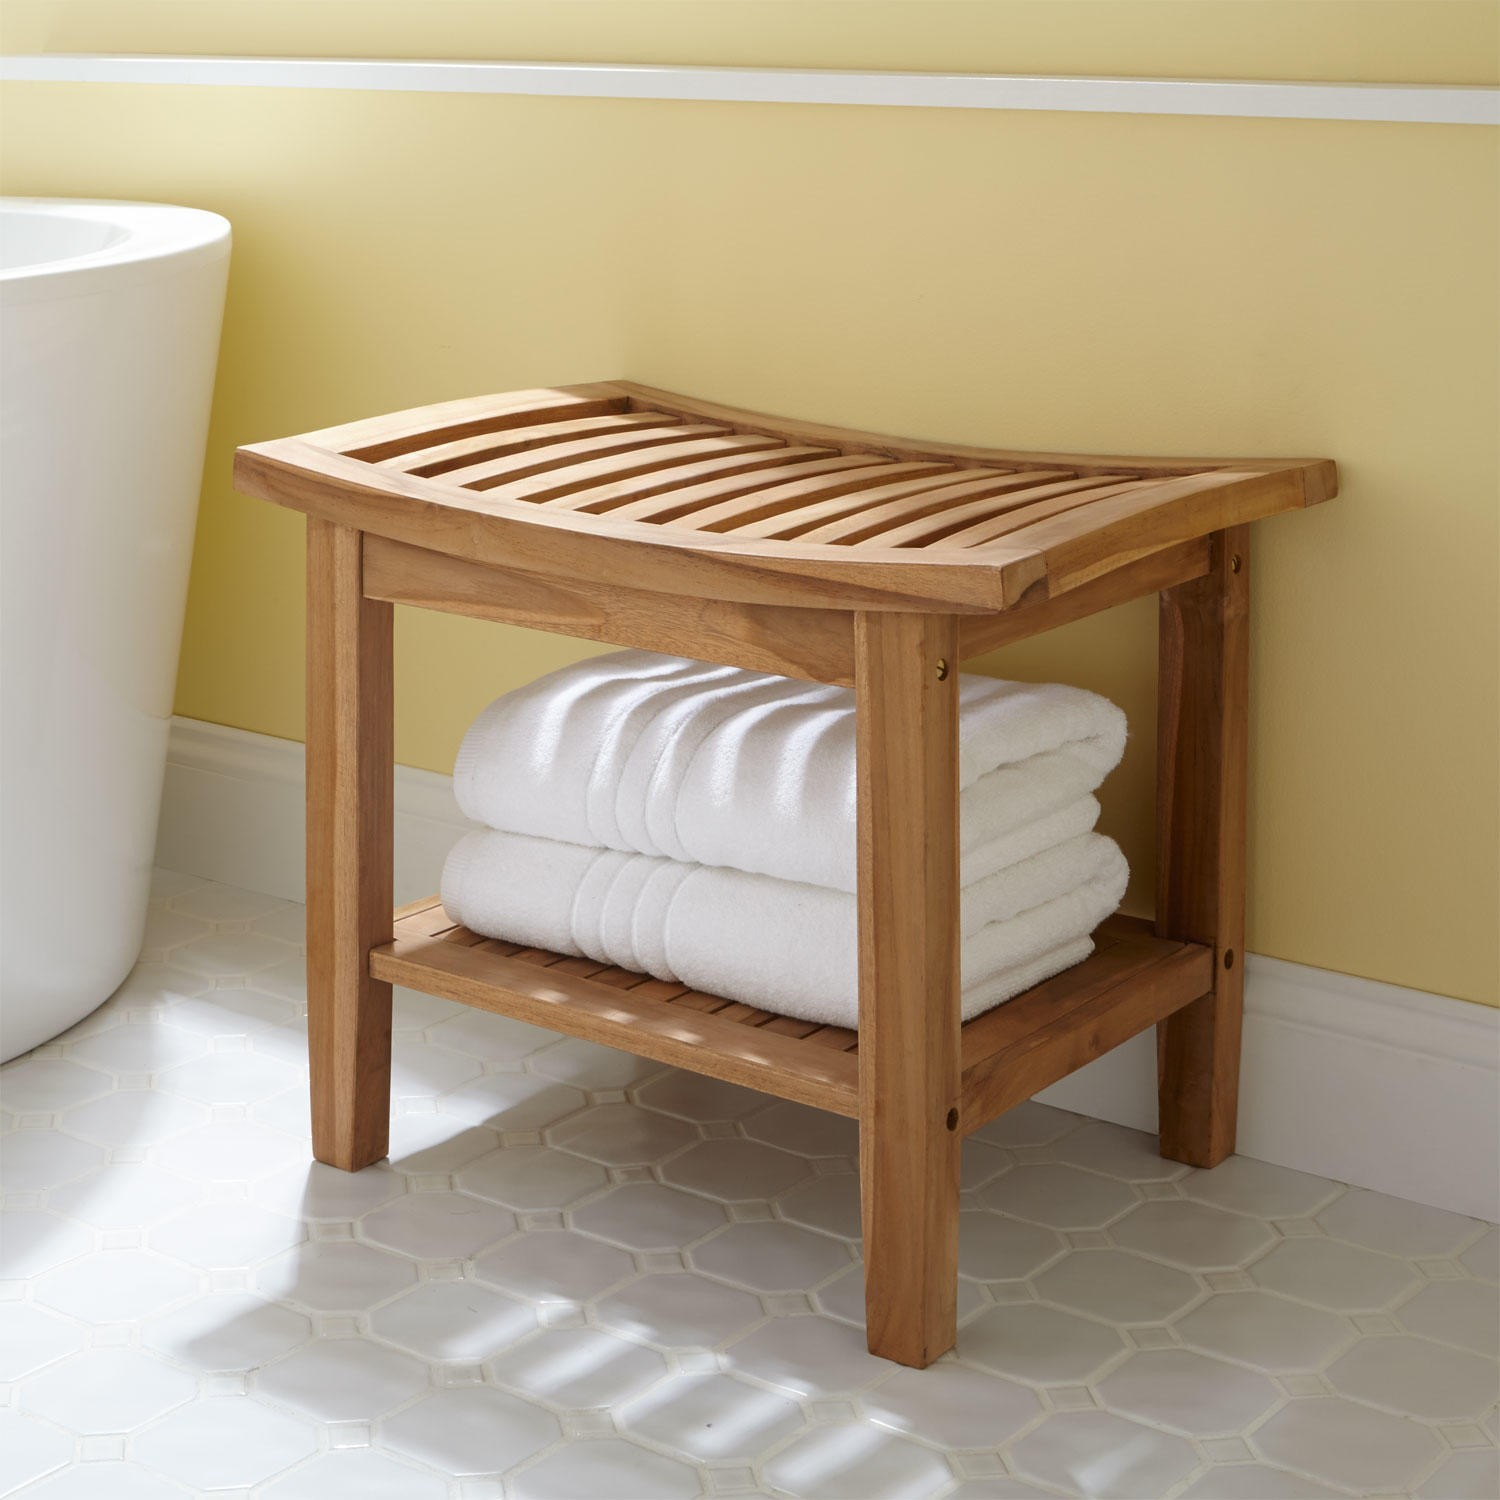 The simple additions for relaxing: bathroom stool